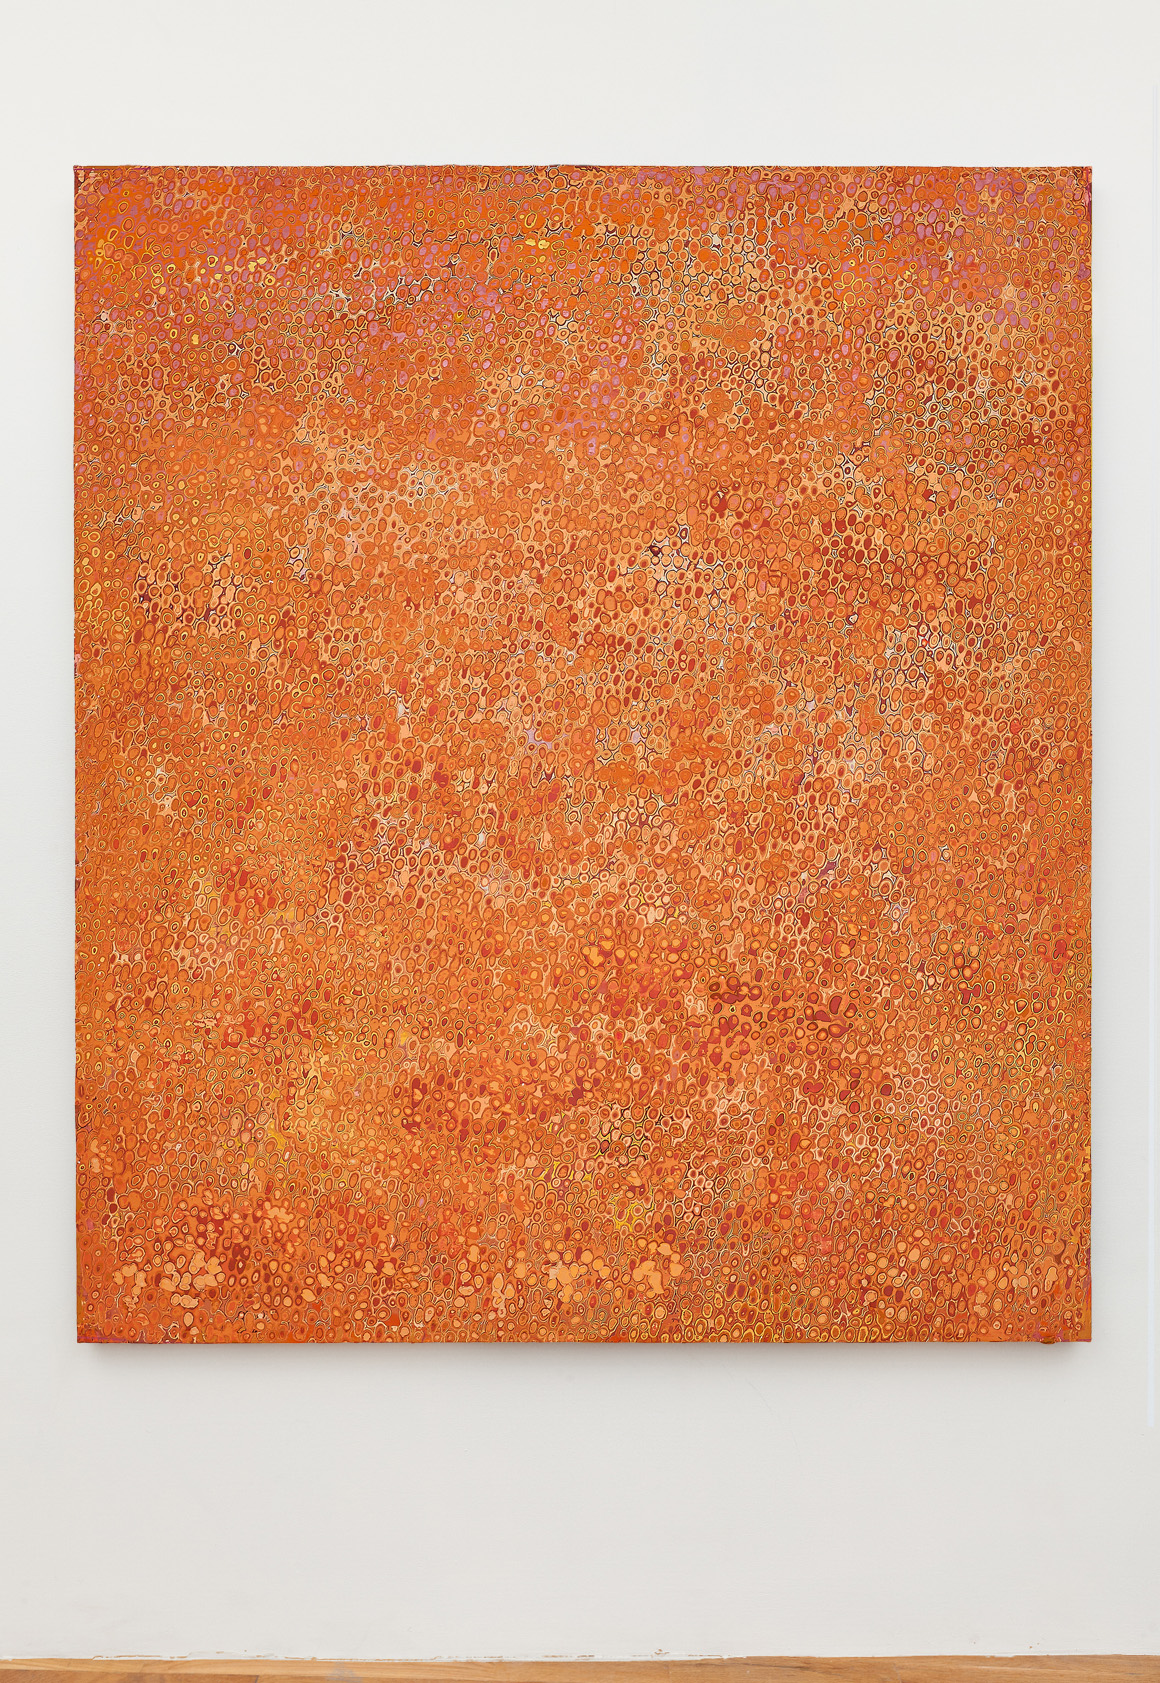 "<p><span class=""name"">Andrew Jensdotter</span><br><em>Orange 70</em><span class='media'>Carved latex on canvas</span>80 x 68 in (203.2 x 172.7 cm)<br>2018<br><a class='inquire' href='mailto:info@gildargallery.com?subject=Artwork Inquiry AJEN0054&body=I am interested in finding out more about Orange 70 by Andrew Jensdotter'>Inquire</a></p>"